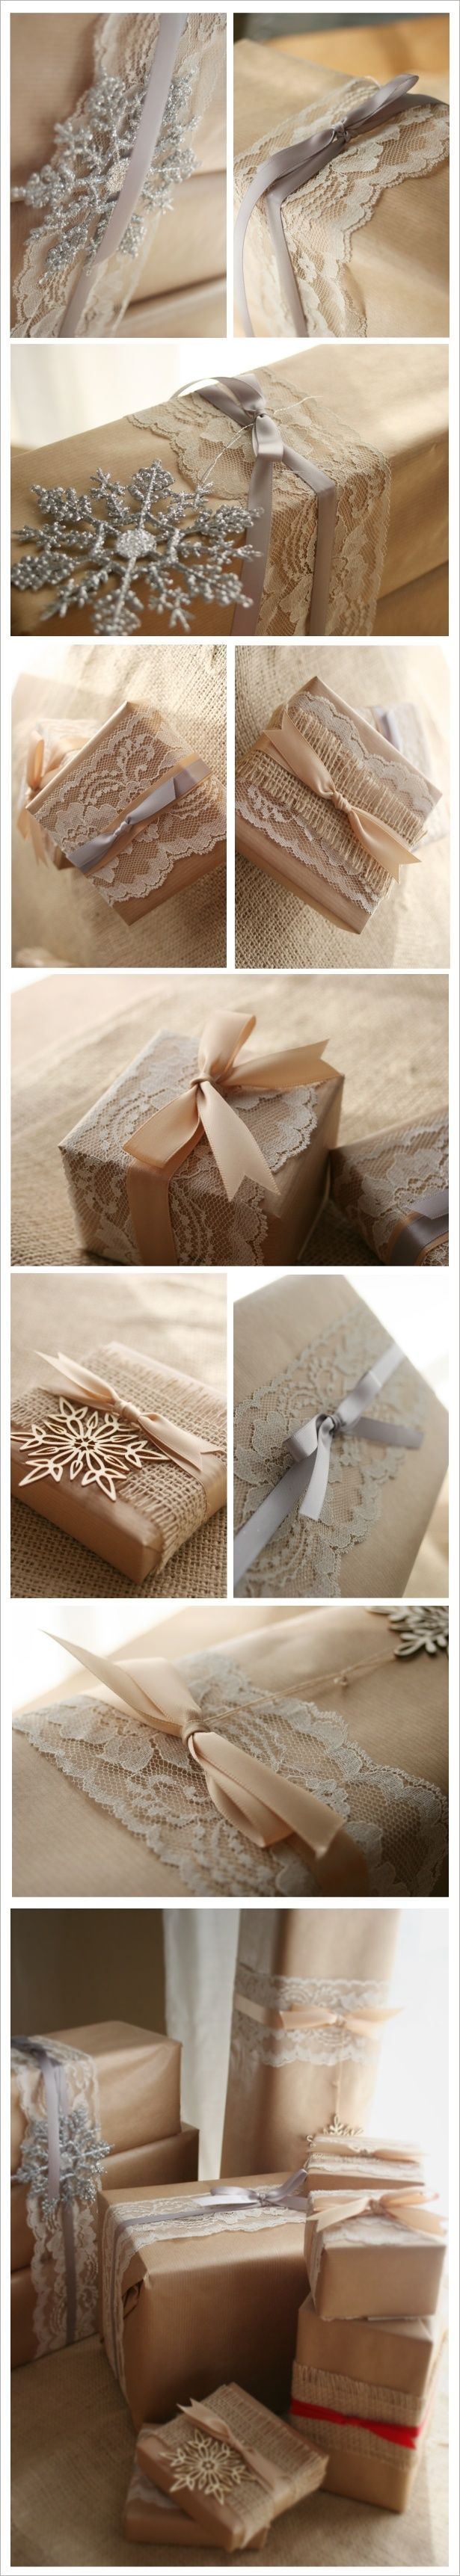 Wrapping with kraft brown, lace and silver from The White Aisle.